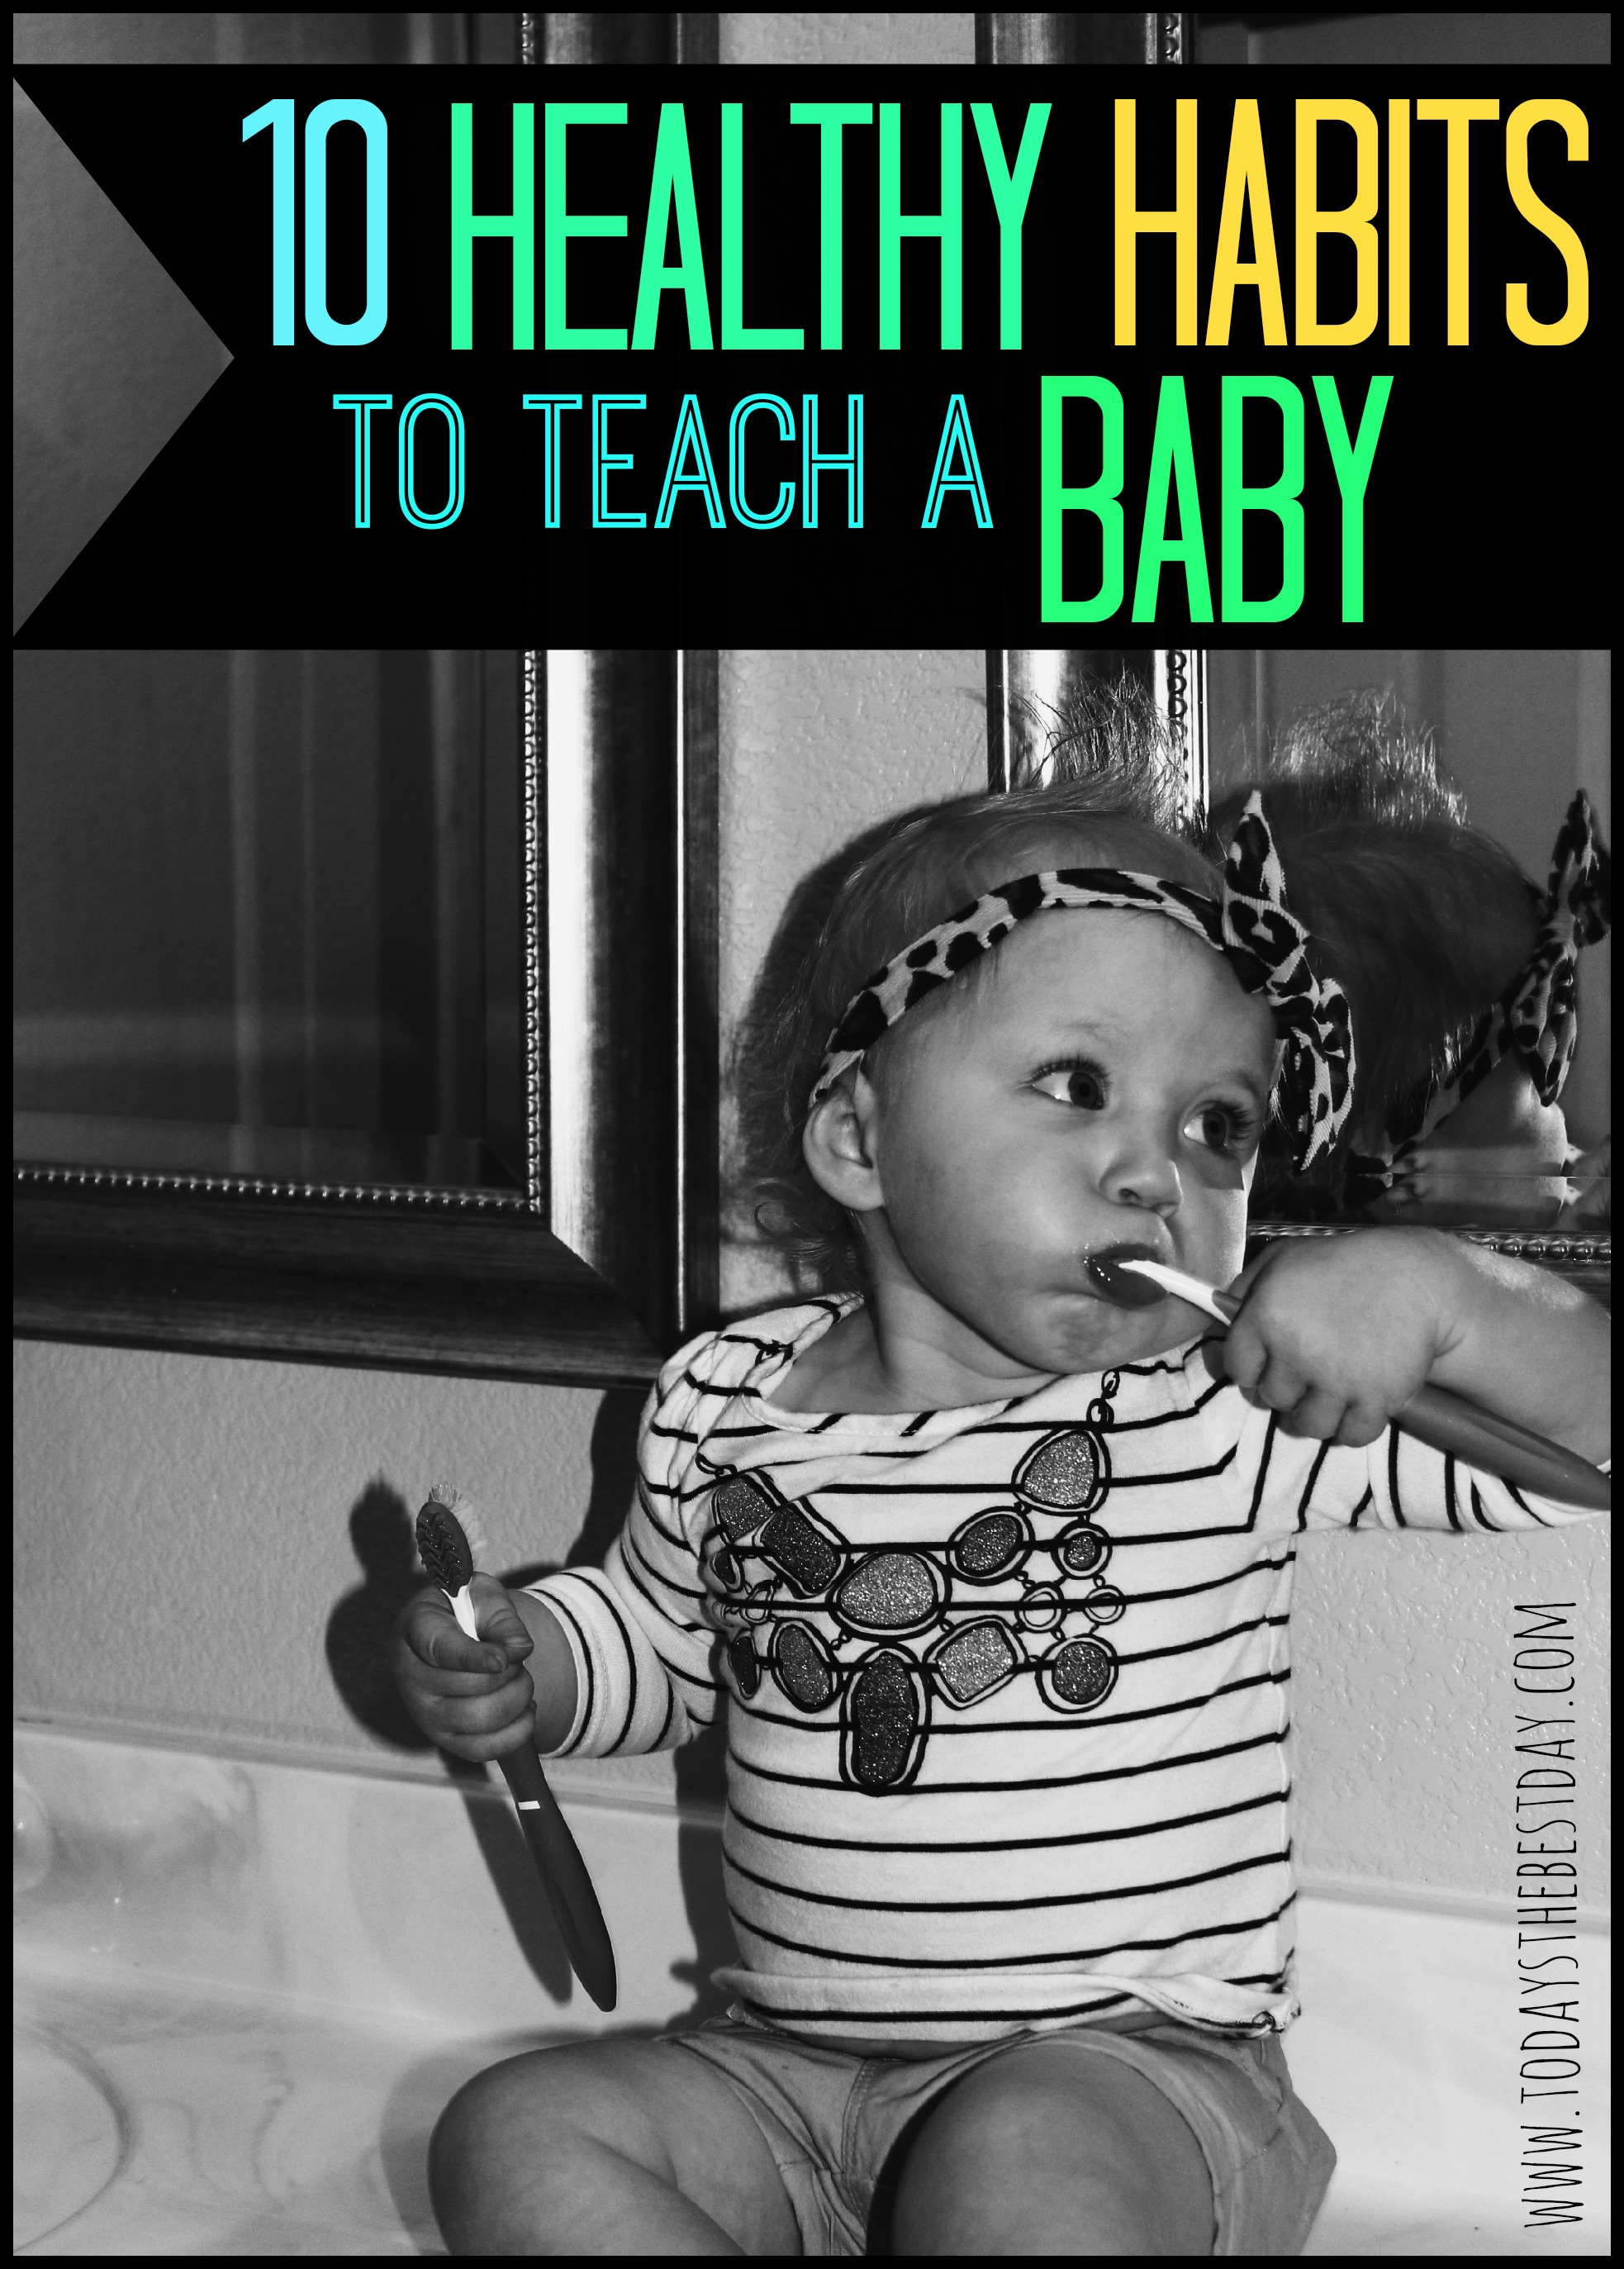 10 Healthy Habits To Teach A Baby